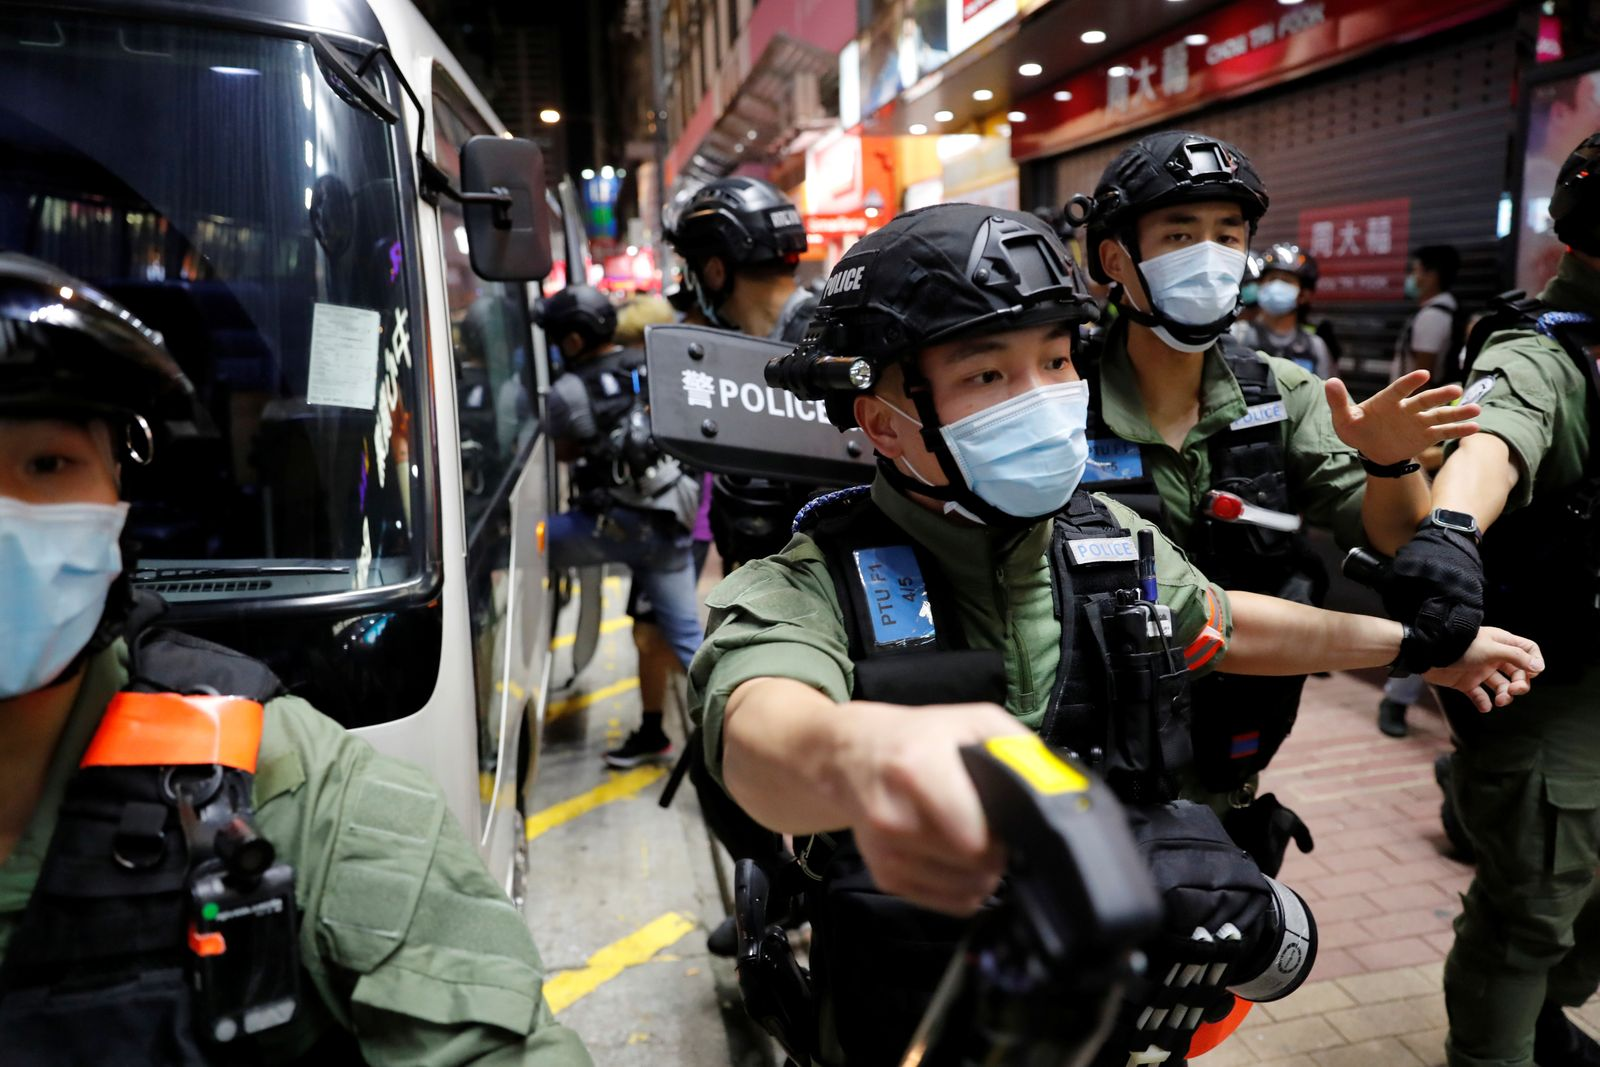 Riot police disperse pro-democracy protesters during a demonstration opposing postponed elections, in Hong Kong